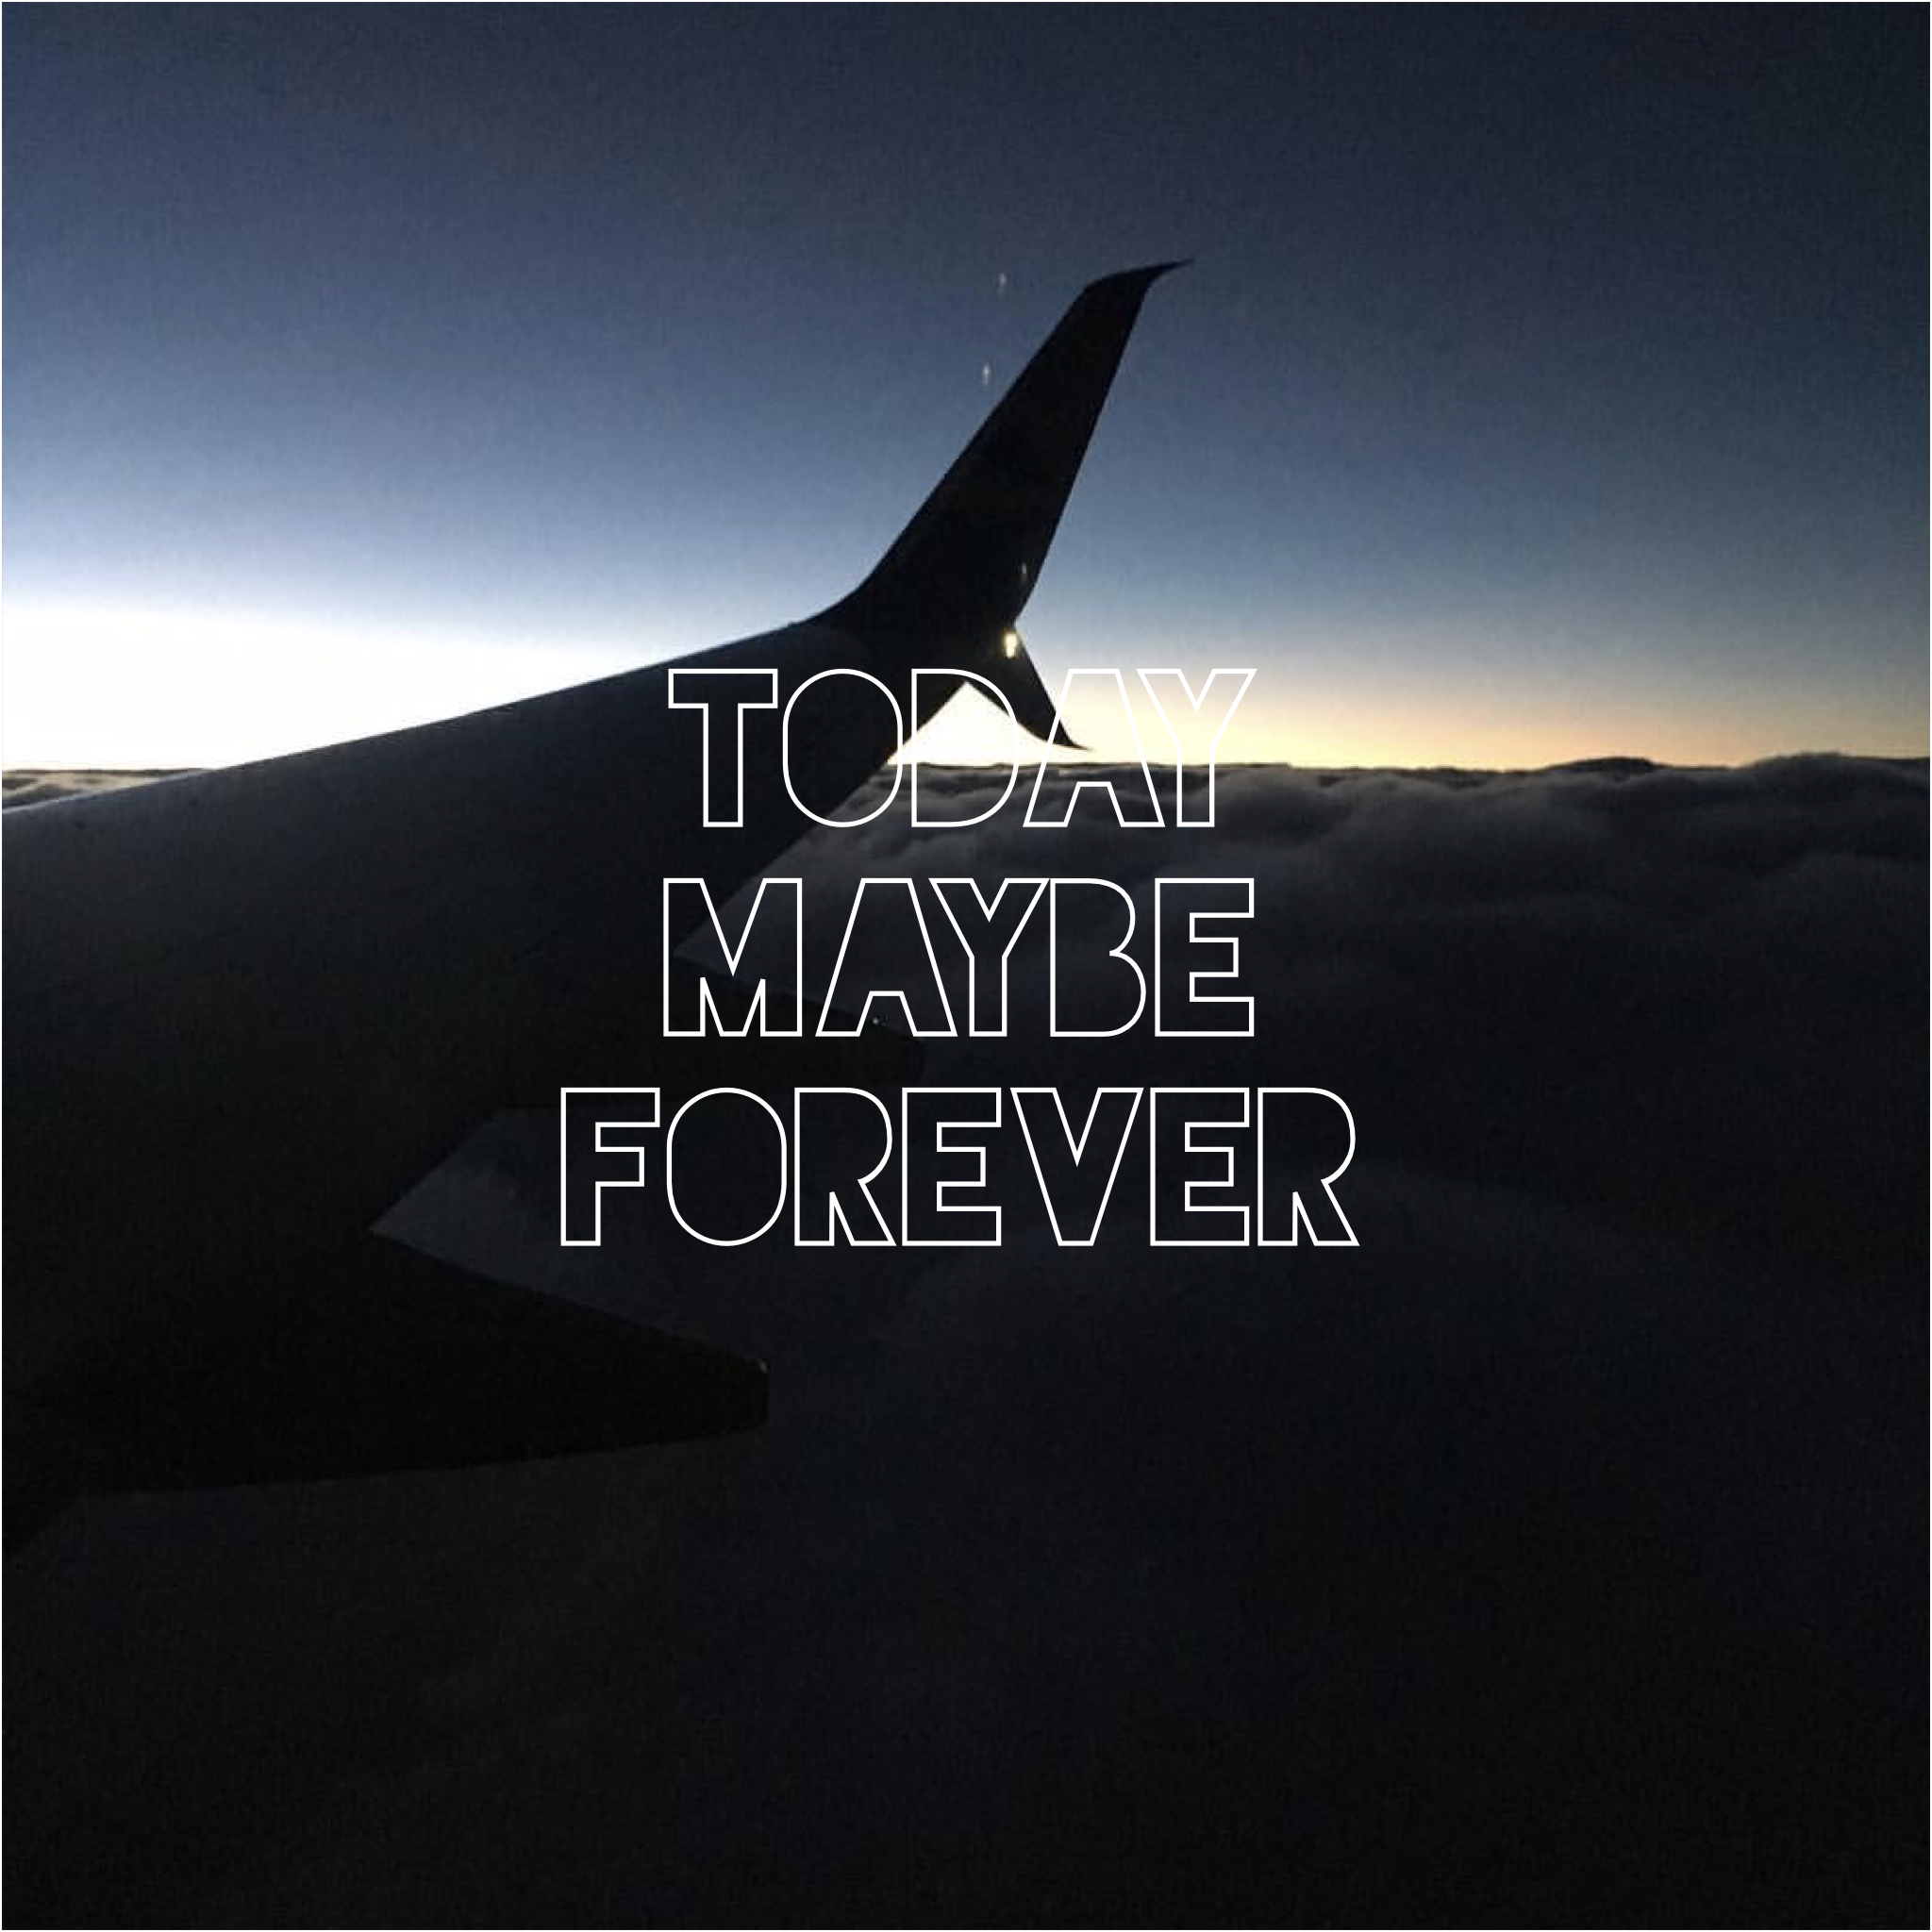 Today Maybe Forever is a conversation experience hosted and produced by  Floyd Hall, featuring compelling ideas and extraordinary people, and  highlighting ...